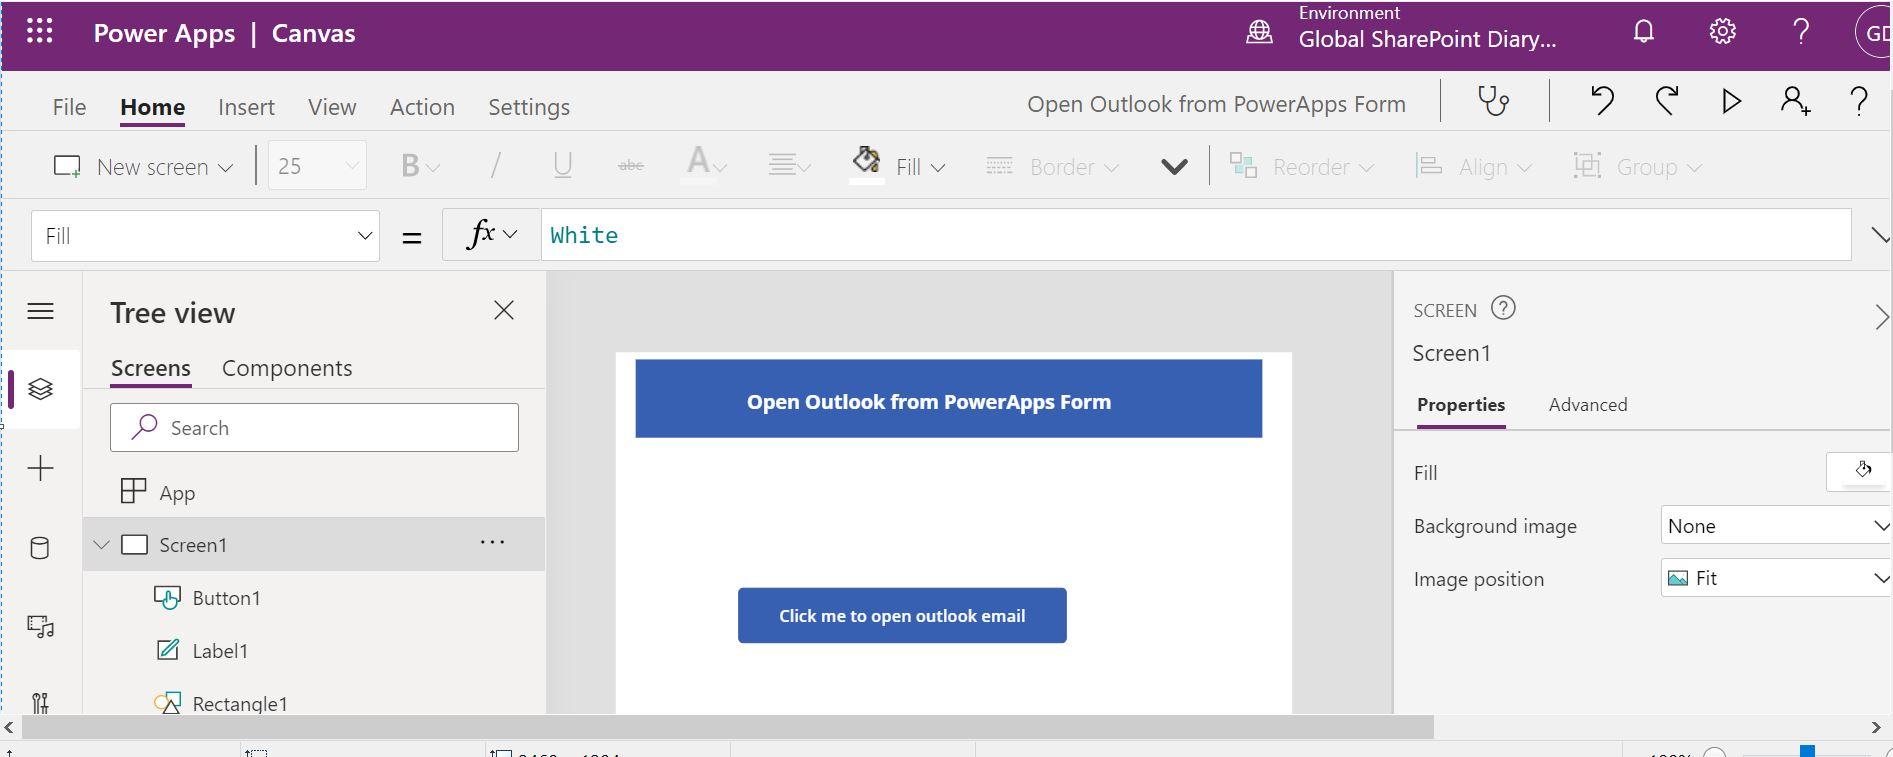 Contact us form in PowerApps